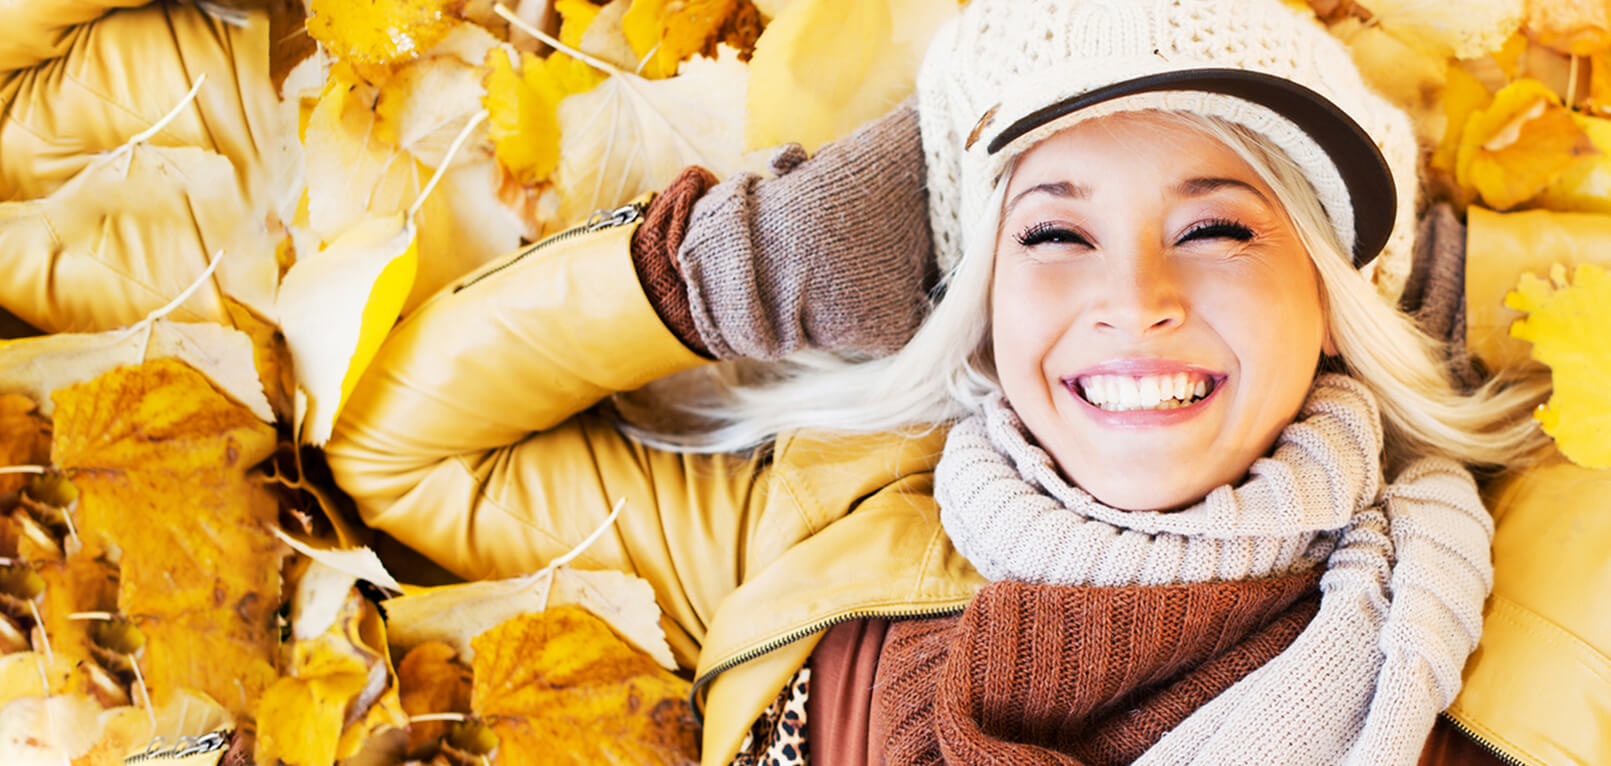 woman smiling laying in leaves